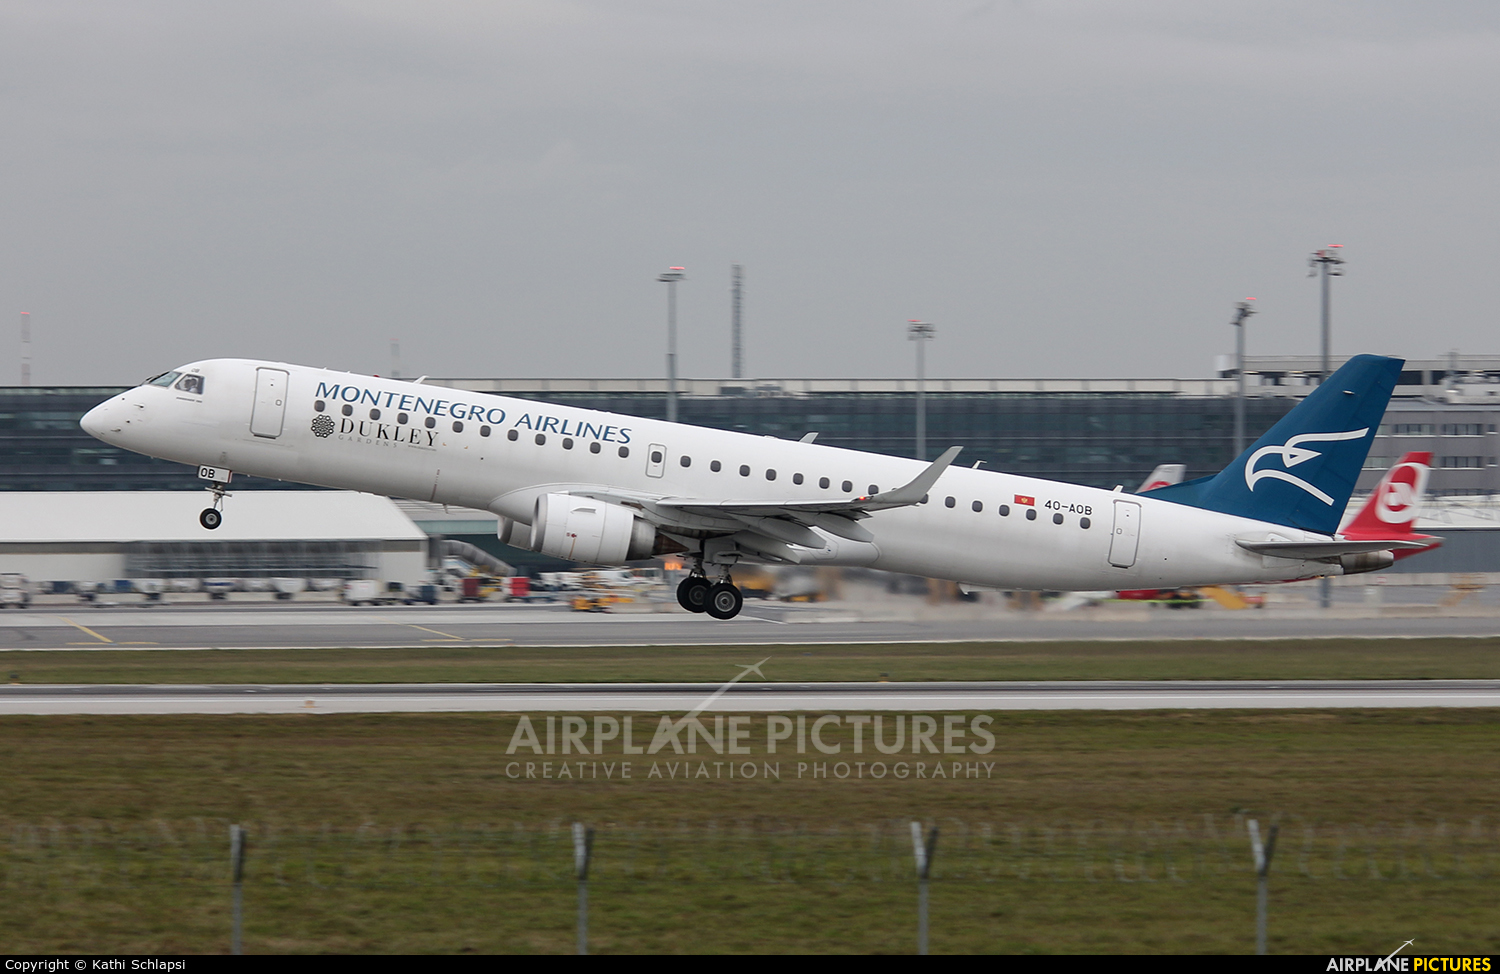 Montenegro Airlines 4O-AOB aircraft at Vienna - Schwechat